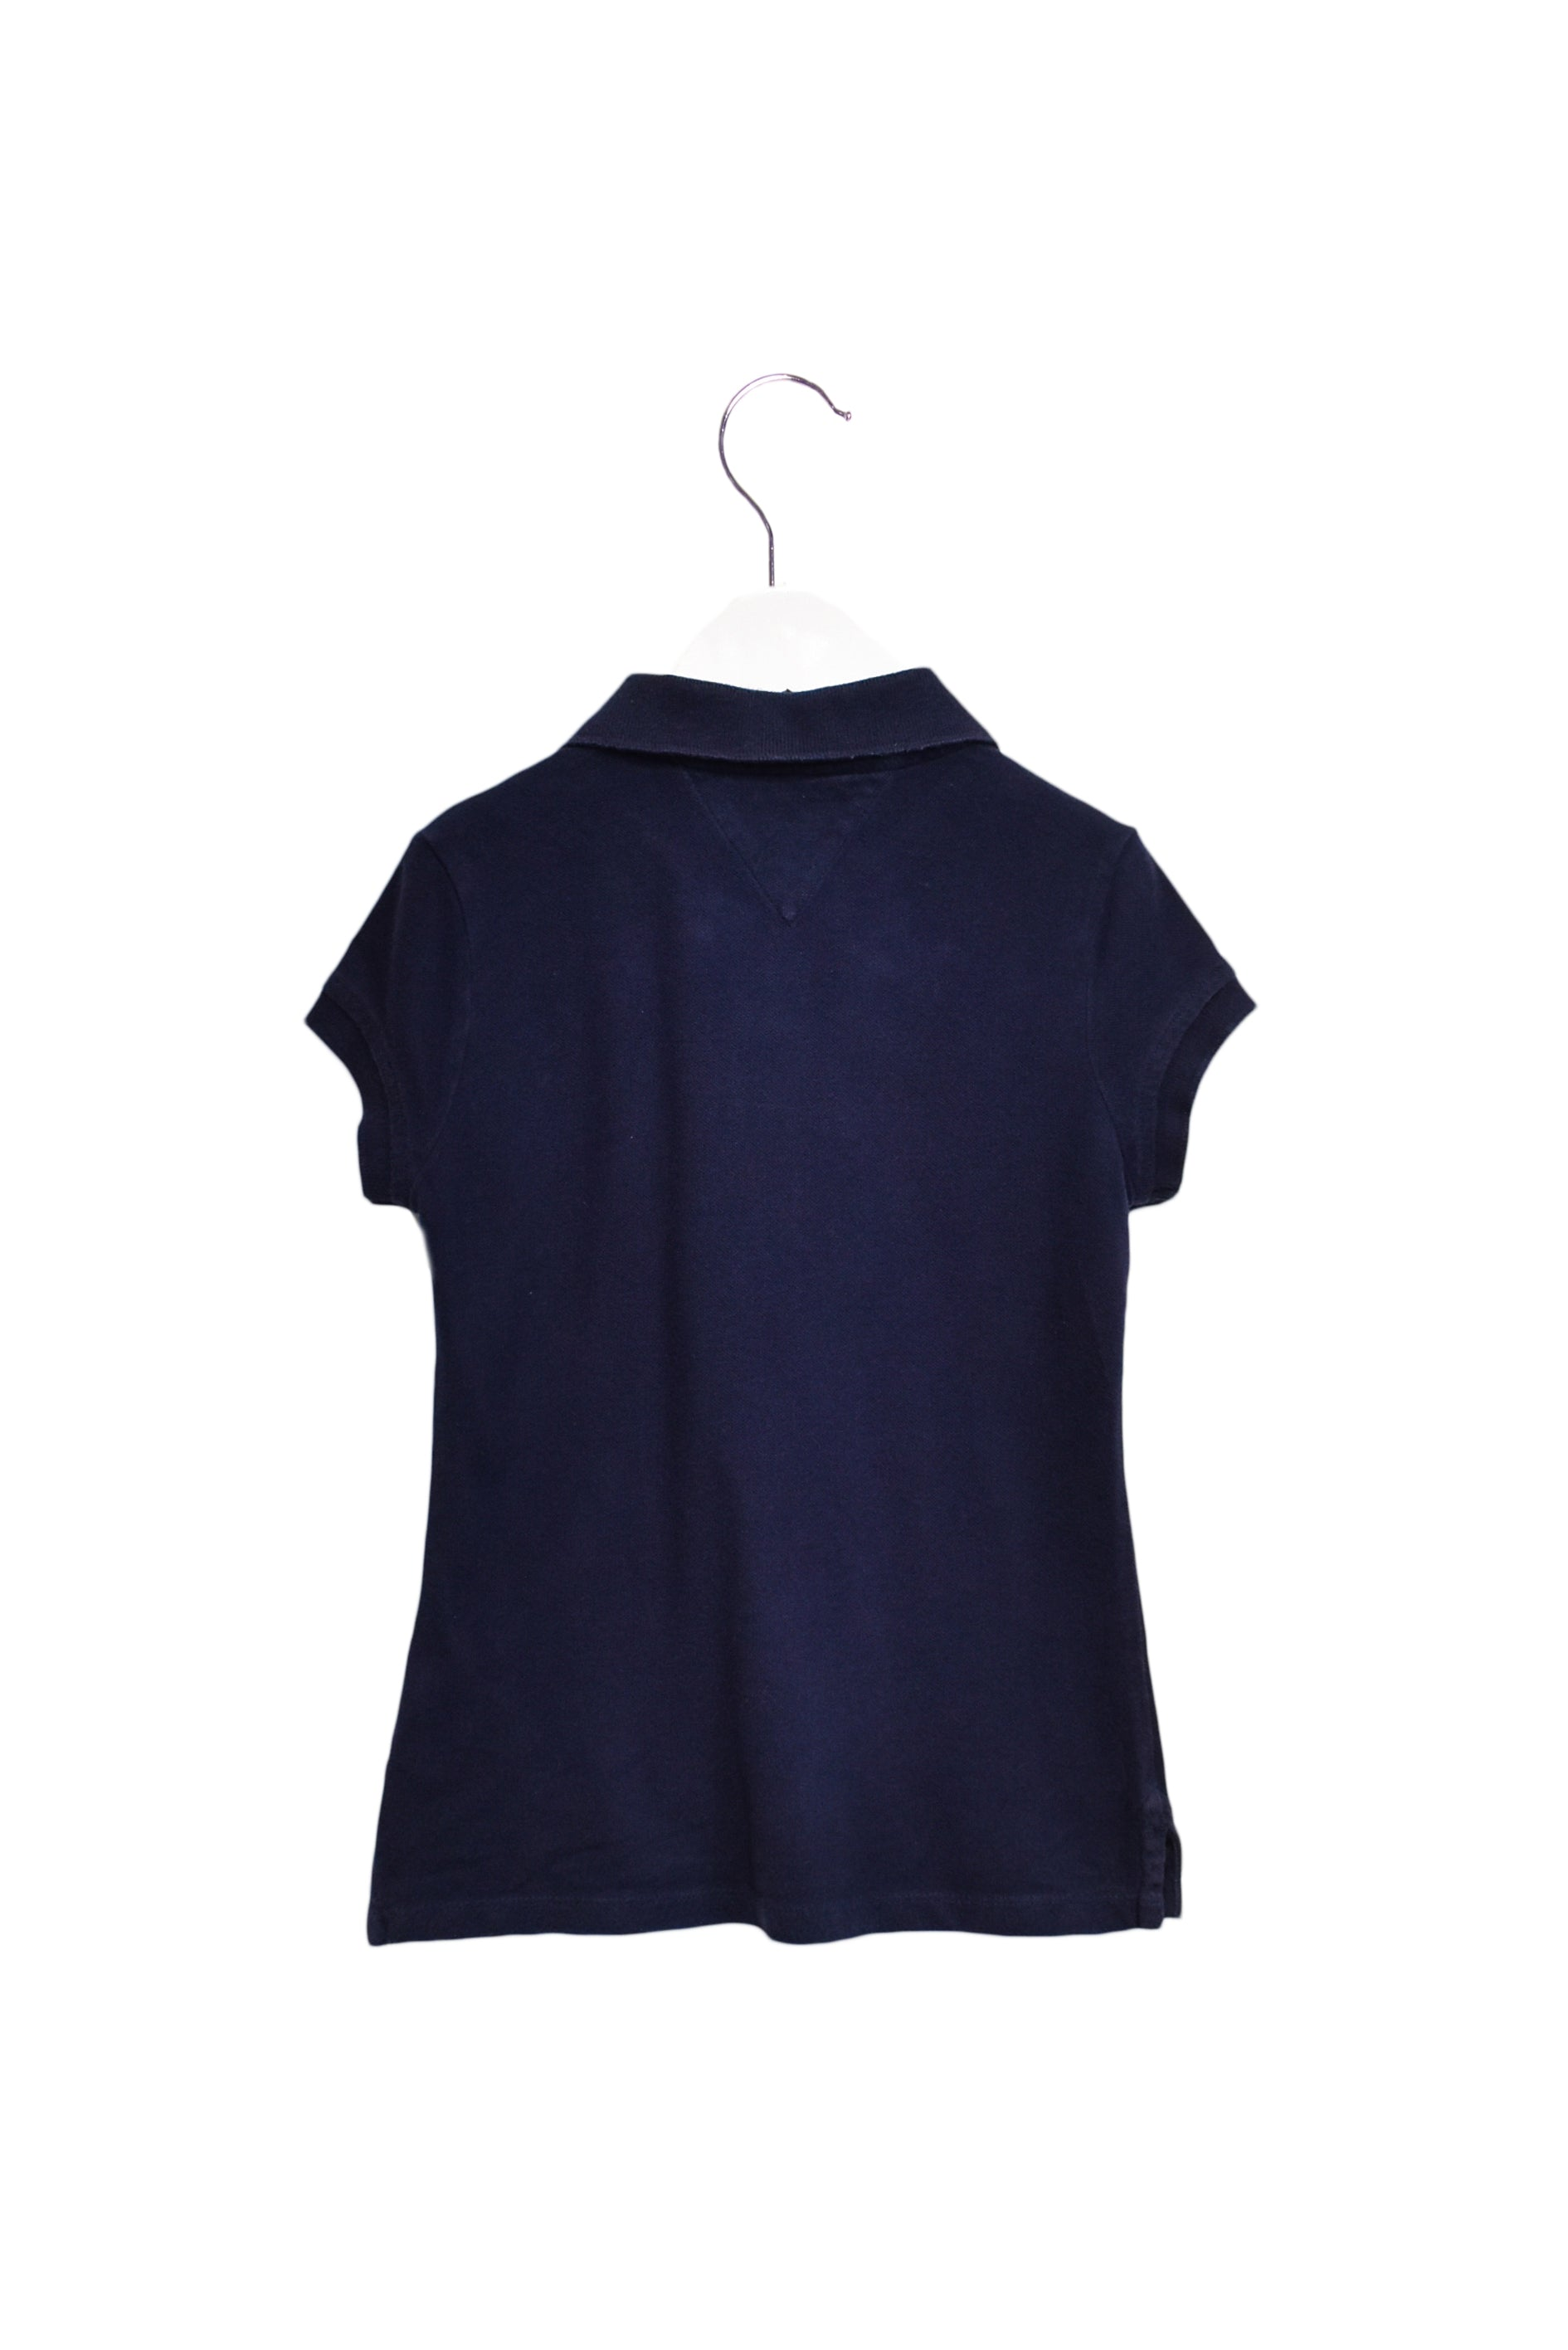 835e9140f 10017410 Tommy Hilfiger Kids~Polo 6T-7 at Retykle